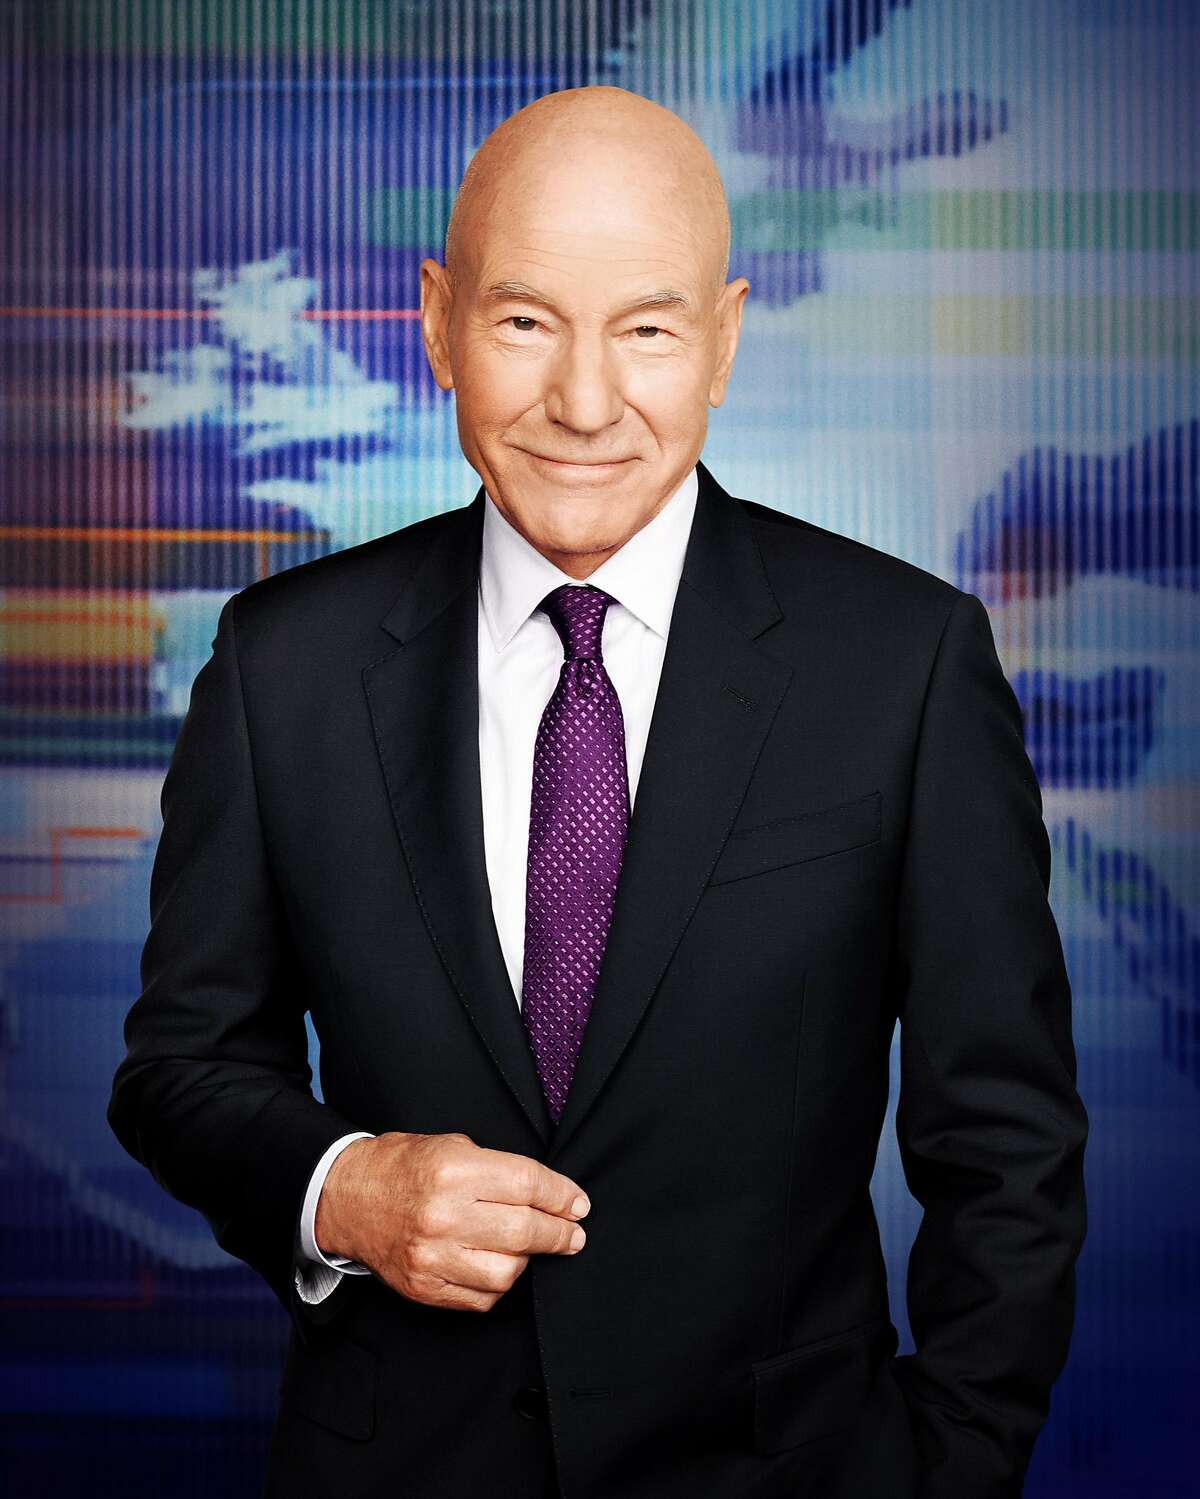 Patrick Stewart is opinionated cable TV newsman Walter Blunt in the new Starz series